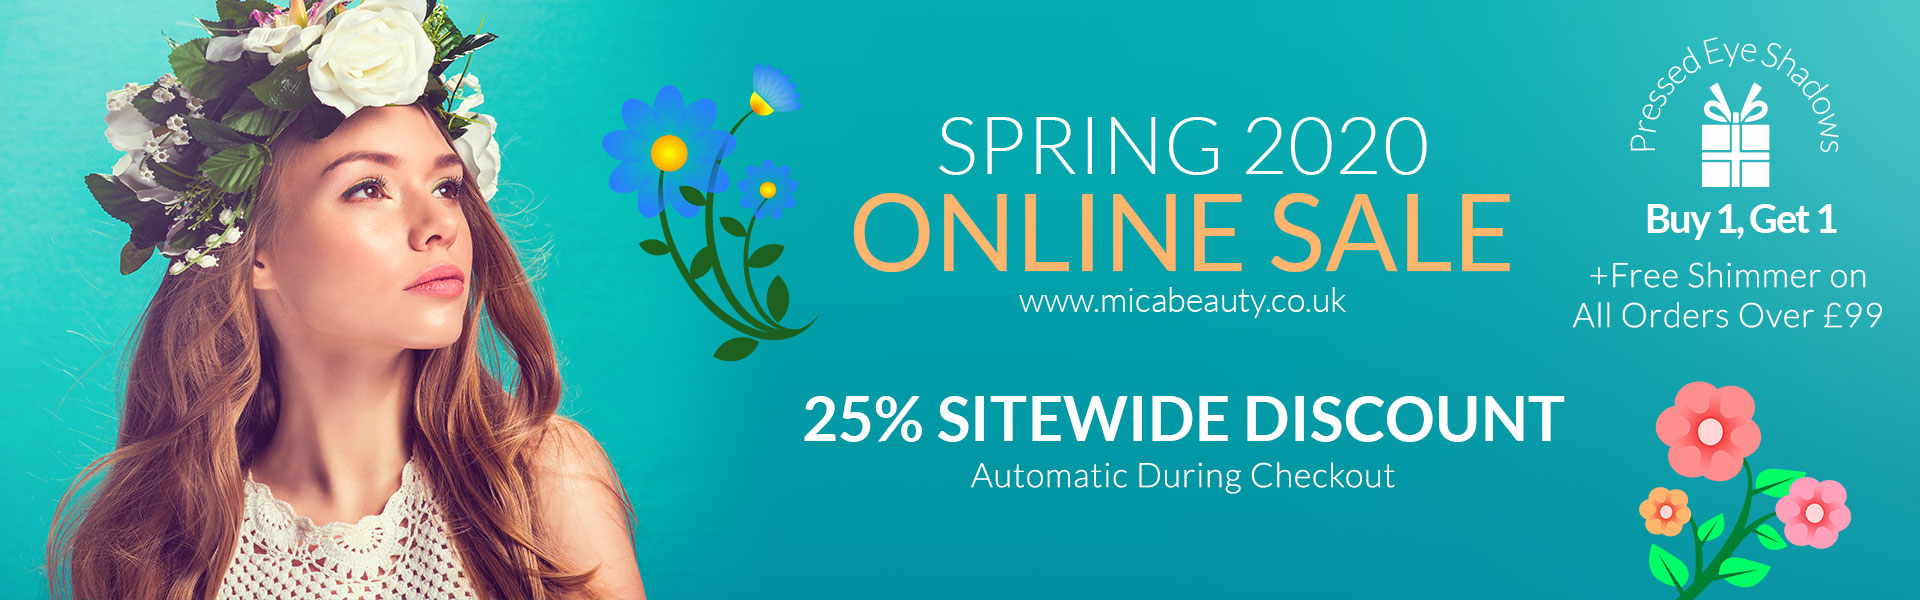 Spring 2020 Online Sale on Micabeauty UK